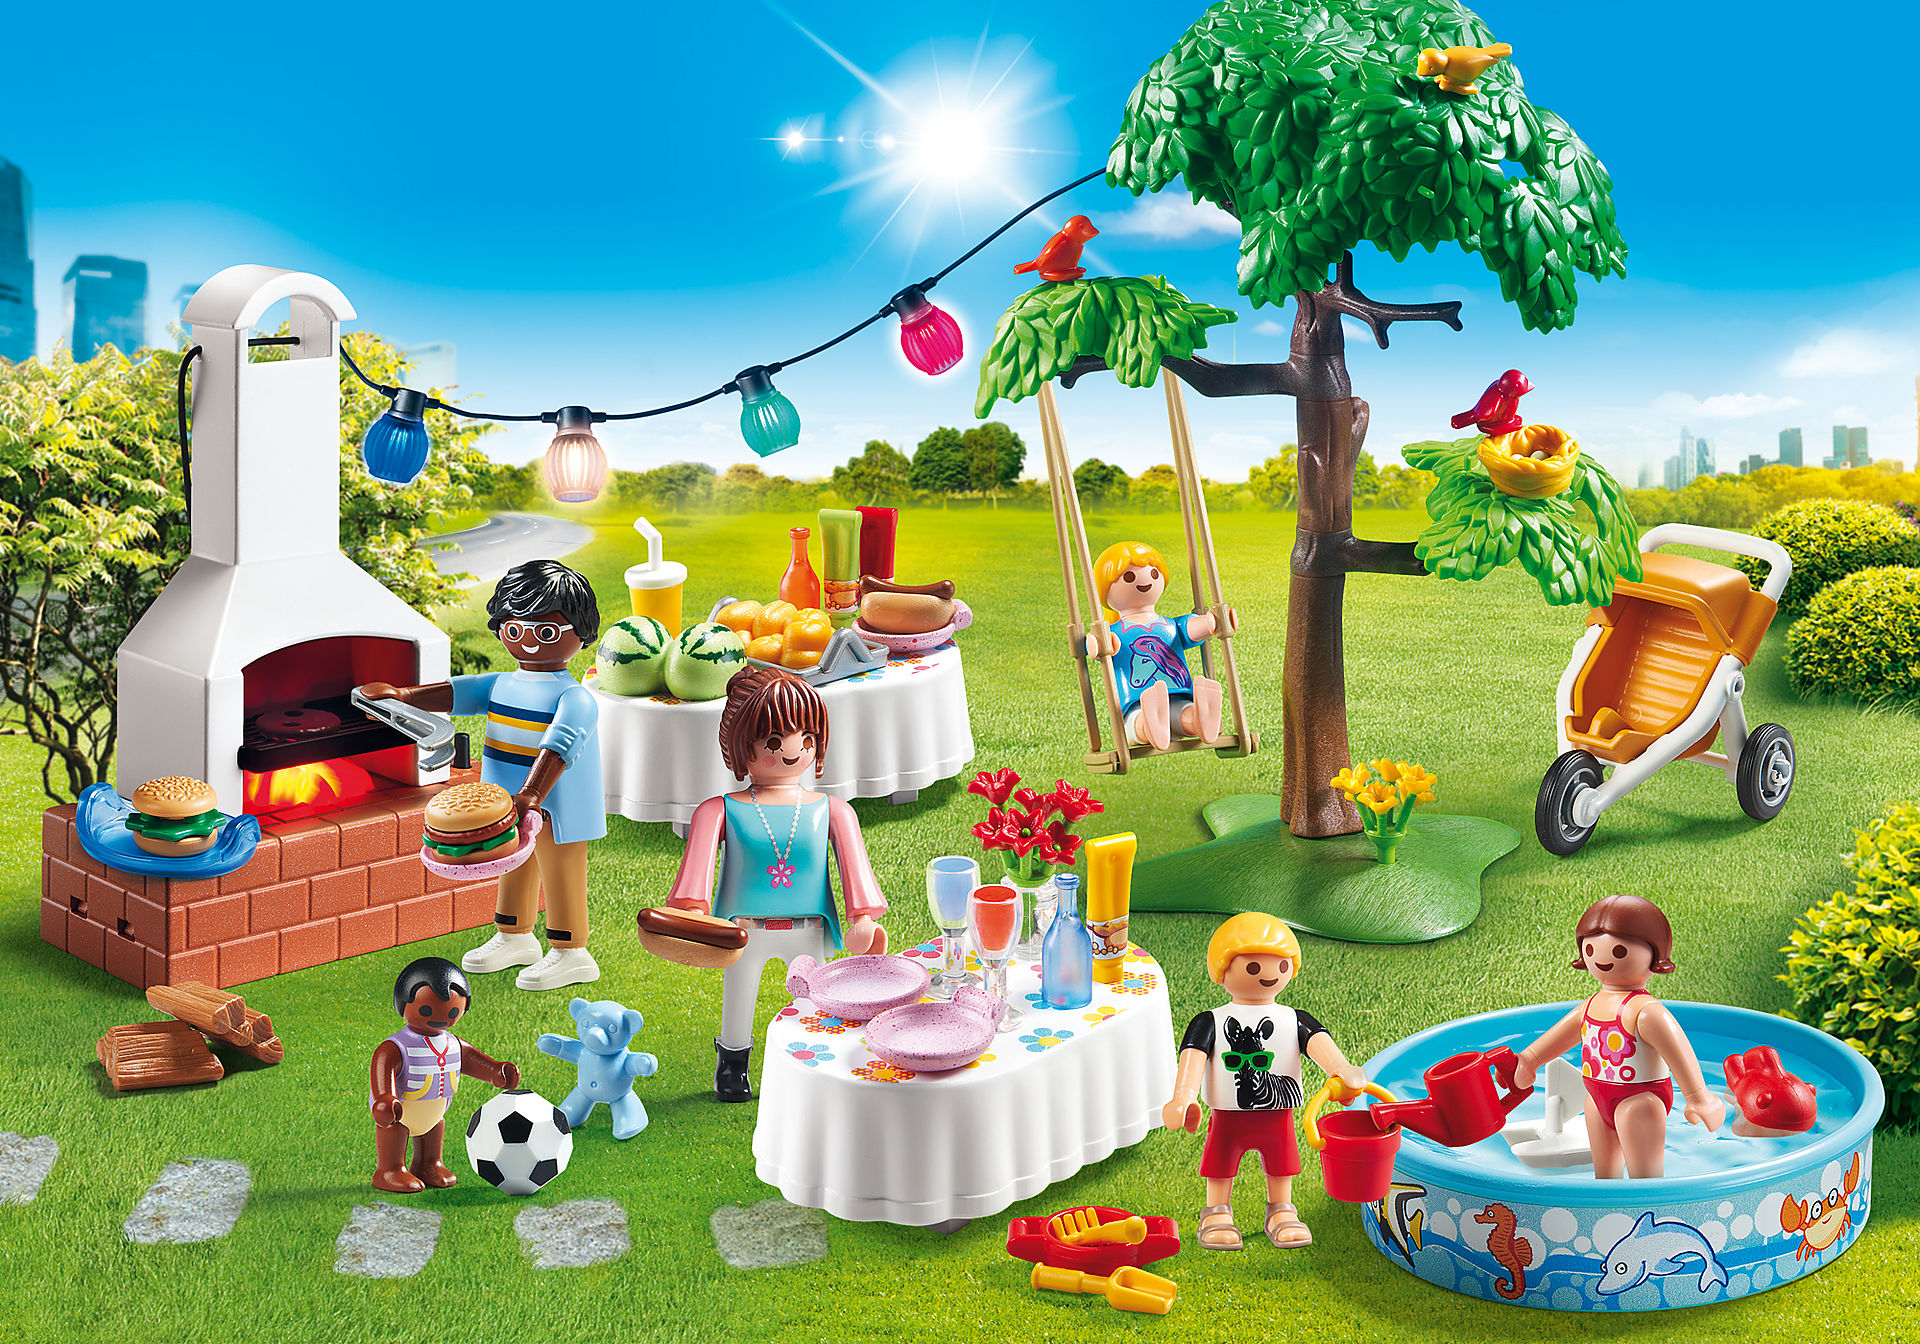 http://media.playmobil.com/i/playmobil/9272_product_detail/Einweihungsparty